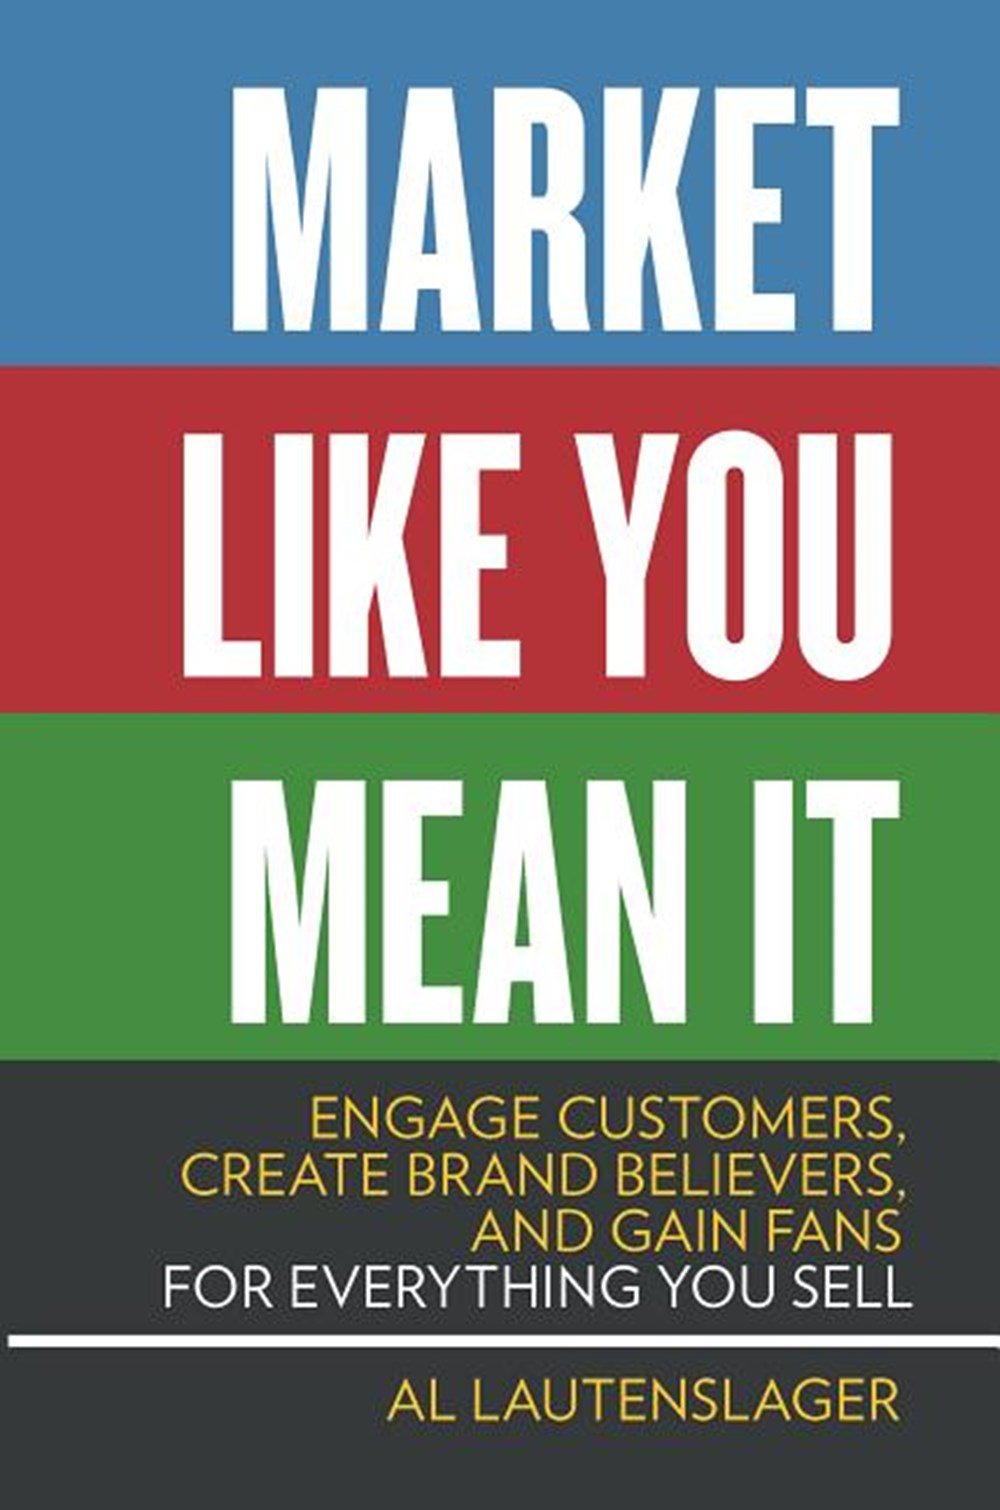 Market Like You Mean It Engage Customers, Create Brand Believers, and Gain Fans for Everything You S